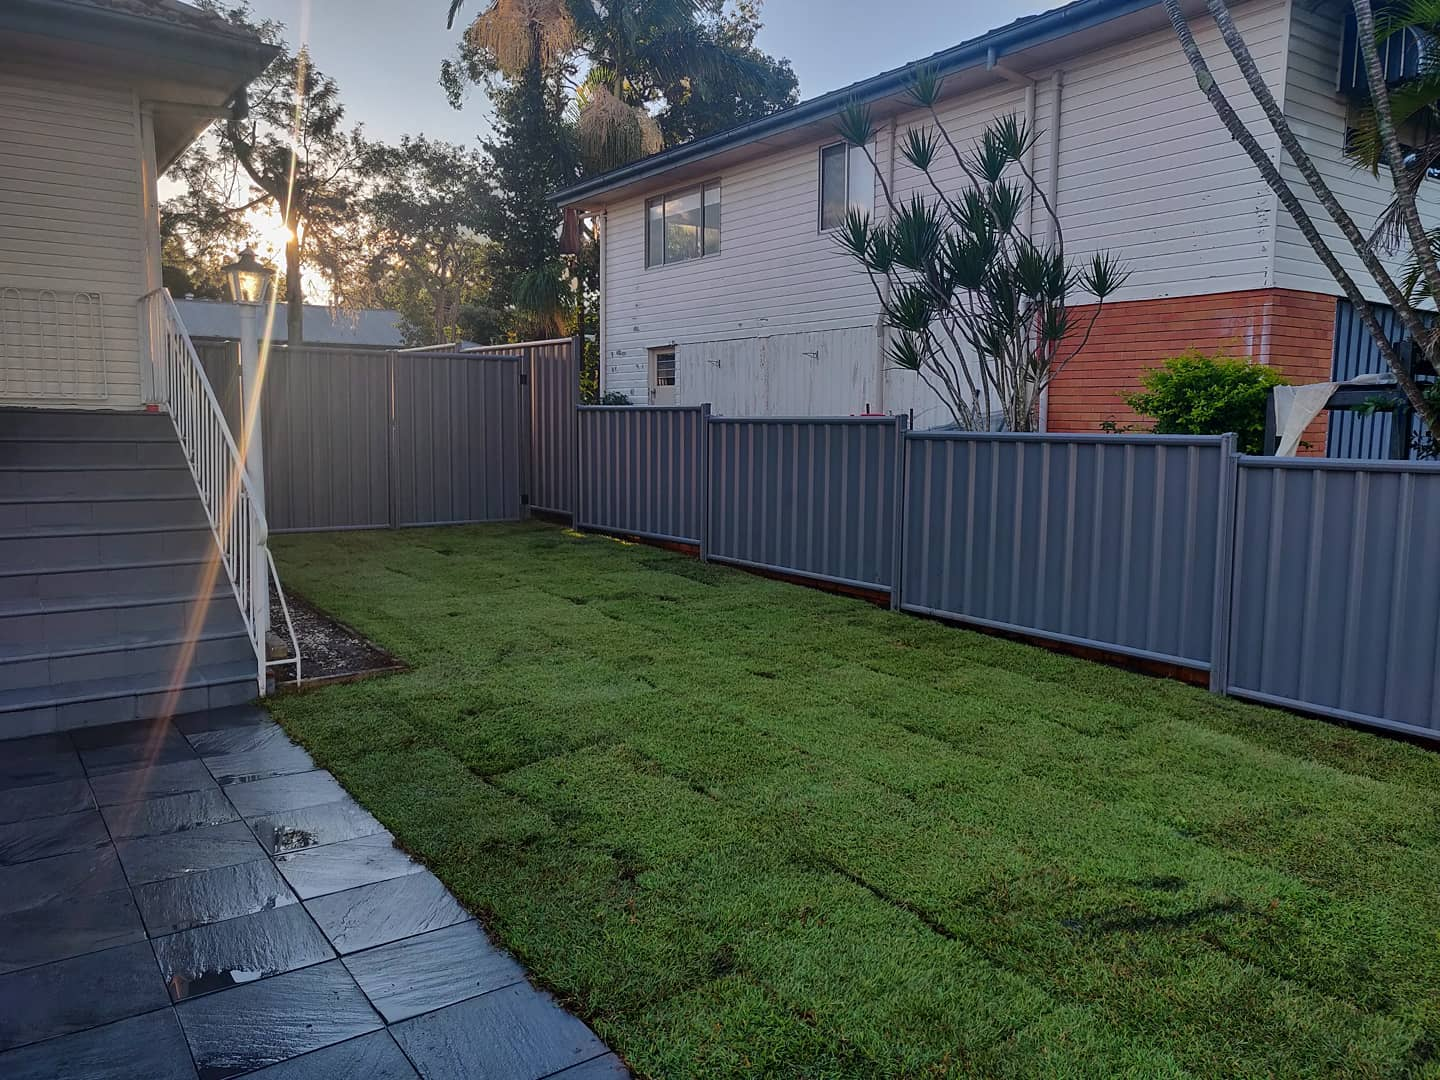 Colour bond fencing with double swinging gates